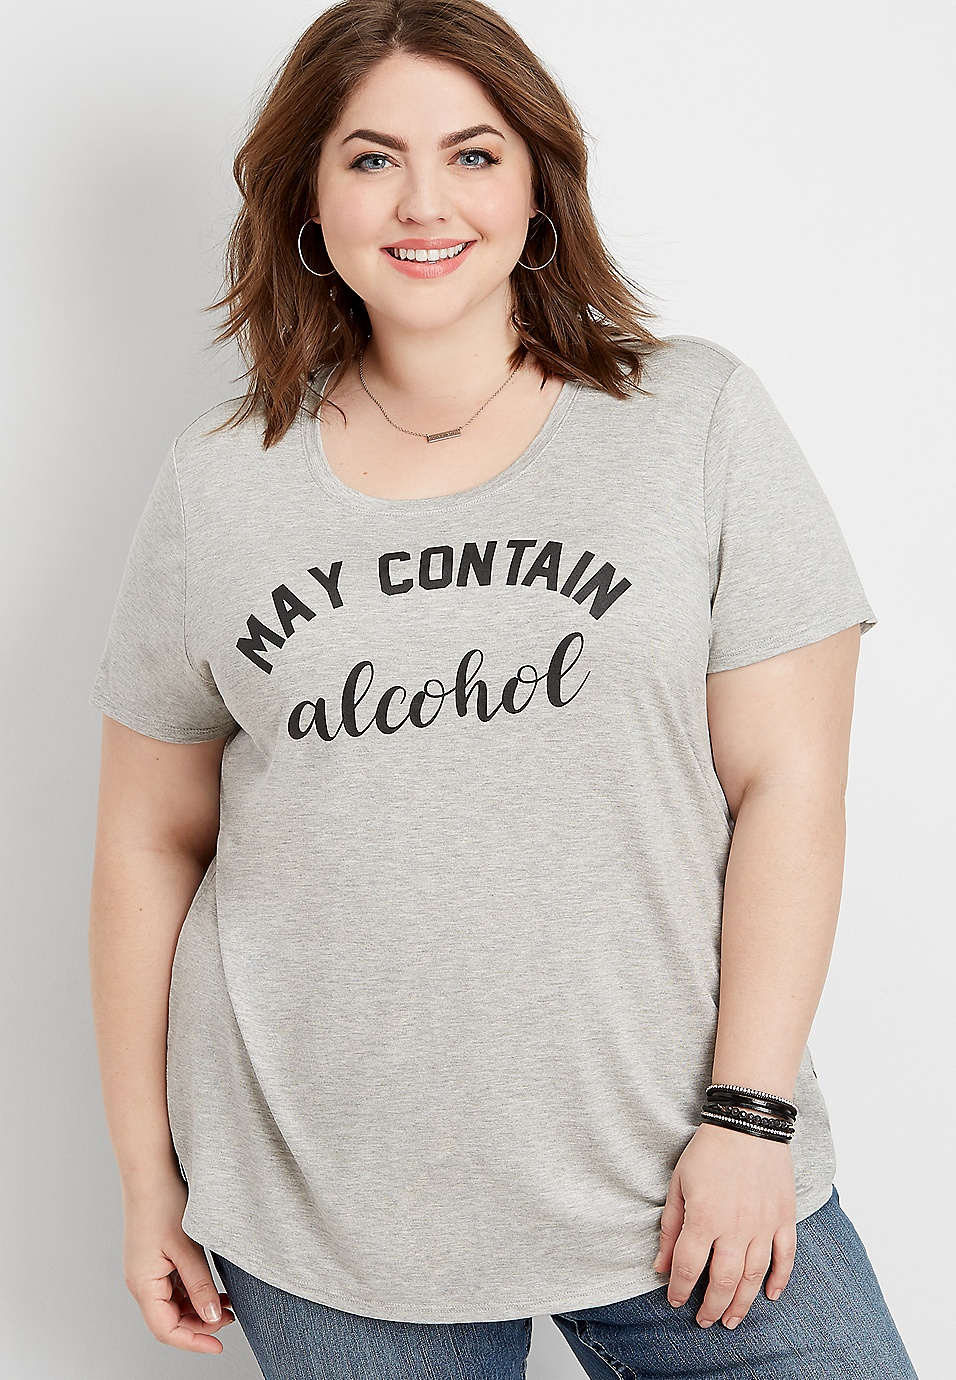 ff611f6a0 plus size may contain alcohol graphic tee | maurices